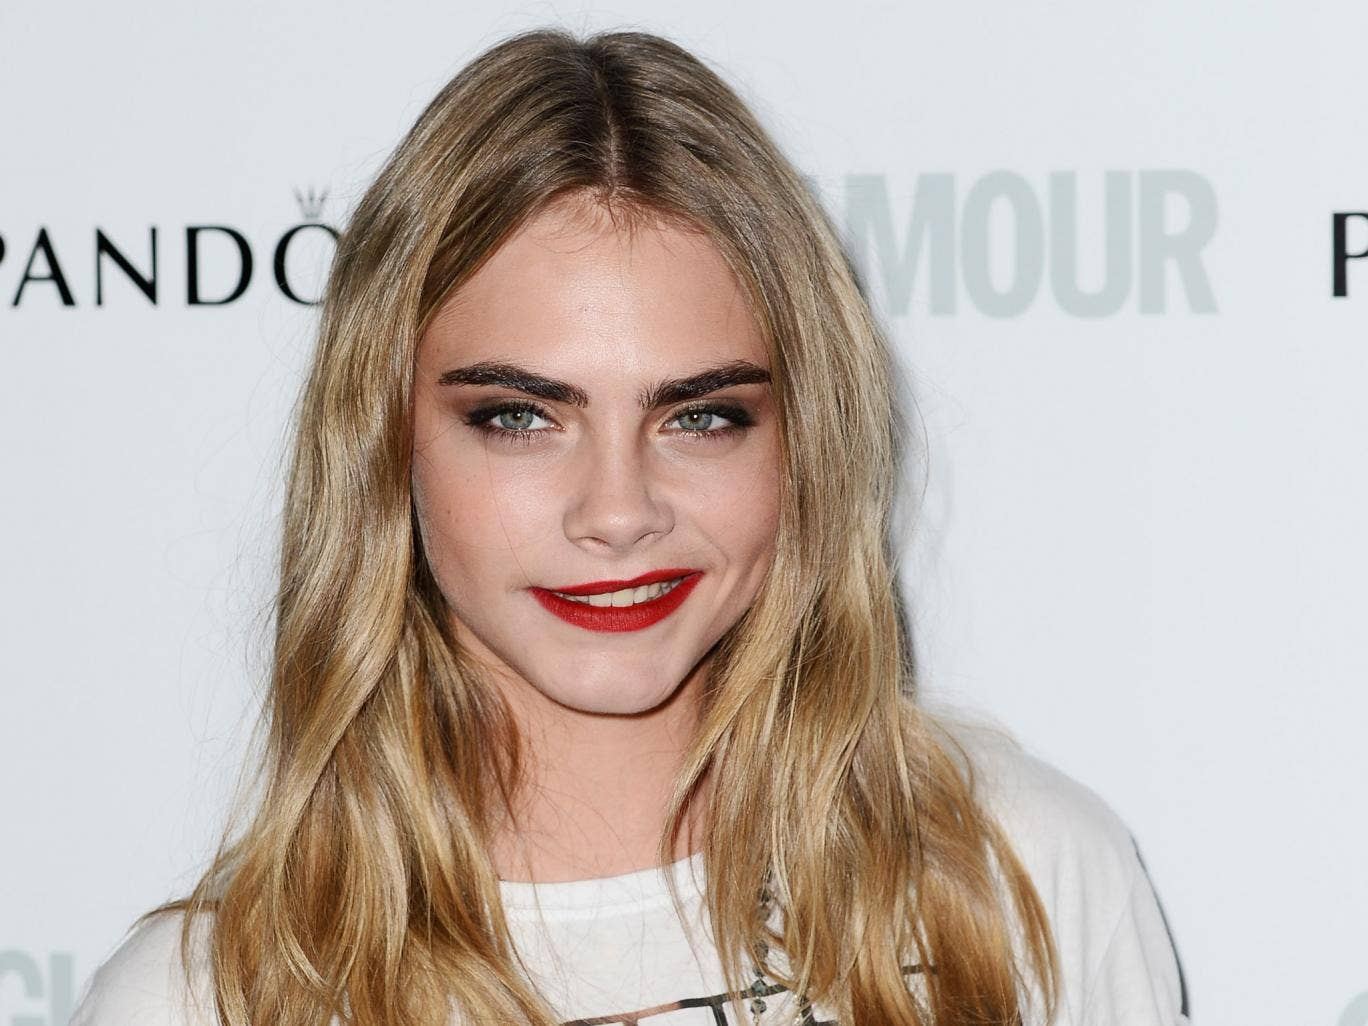 Cara Delevingne, who makes her TV acting debut this week, said she only started modelling to pay for drama school